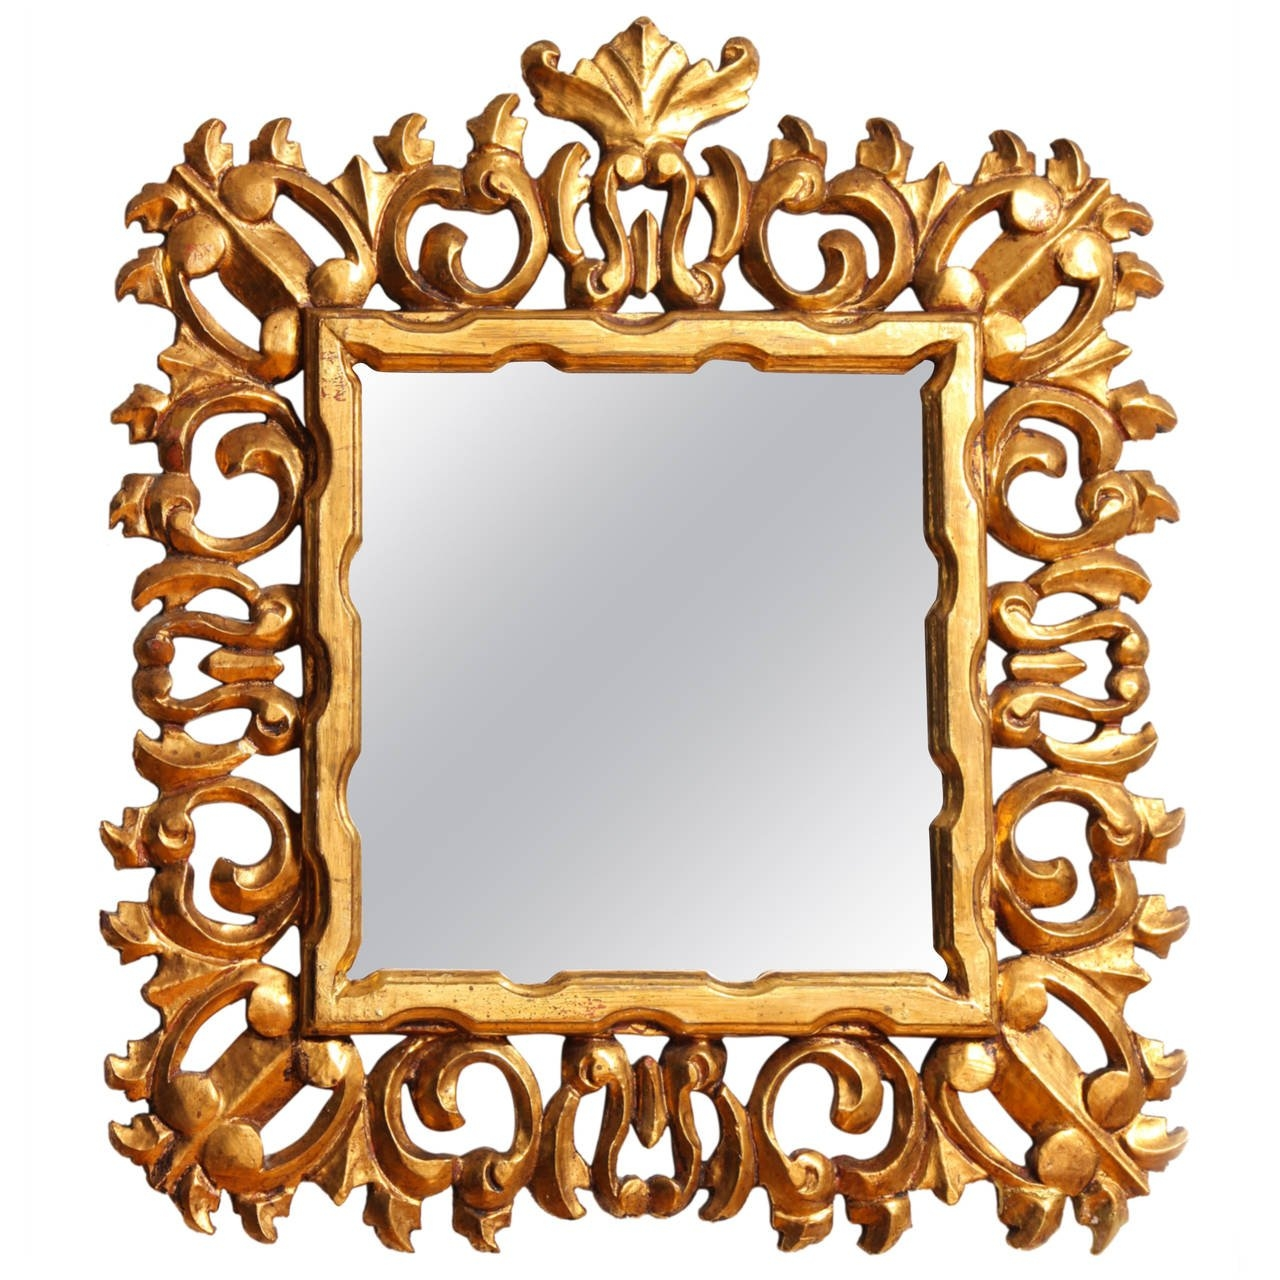 Carved And Gilded Italian Baroque Style Mirror Frame For Sale At Inside Baroque Style Mirror (Image 9 of 15)